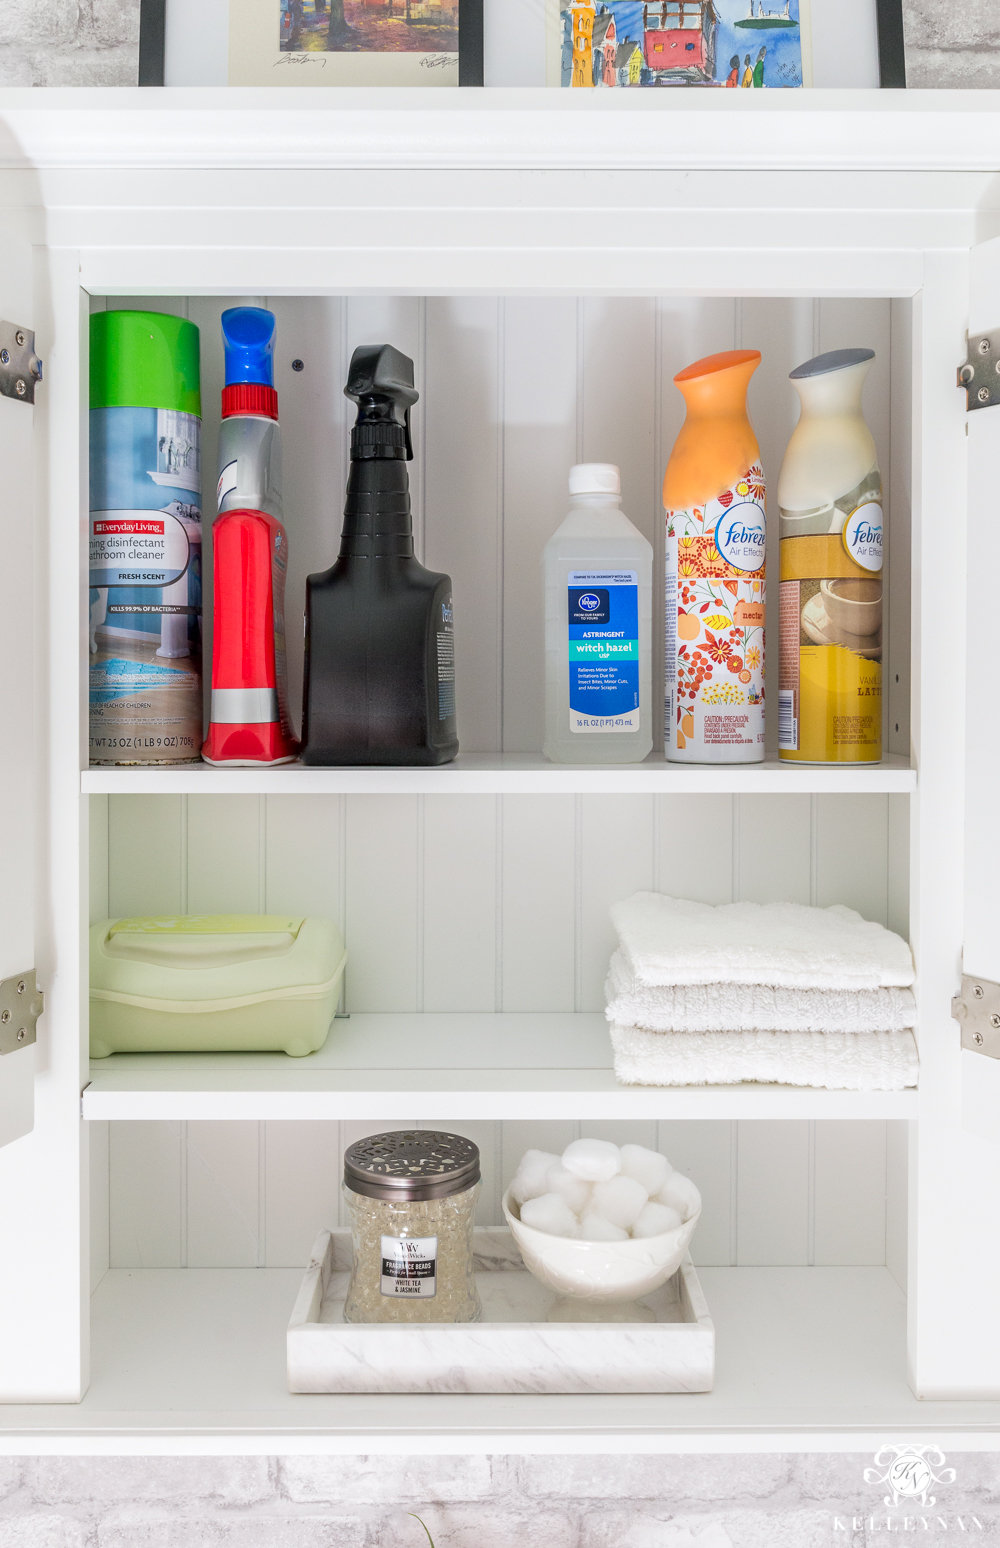 Fullsize Of Bathroom Shelving Solutions